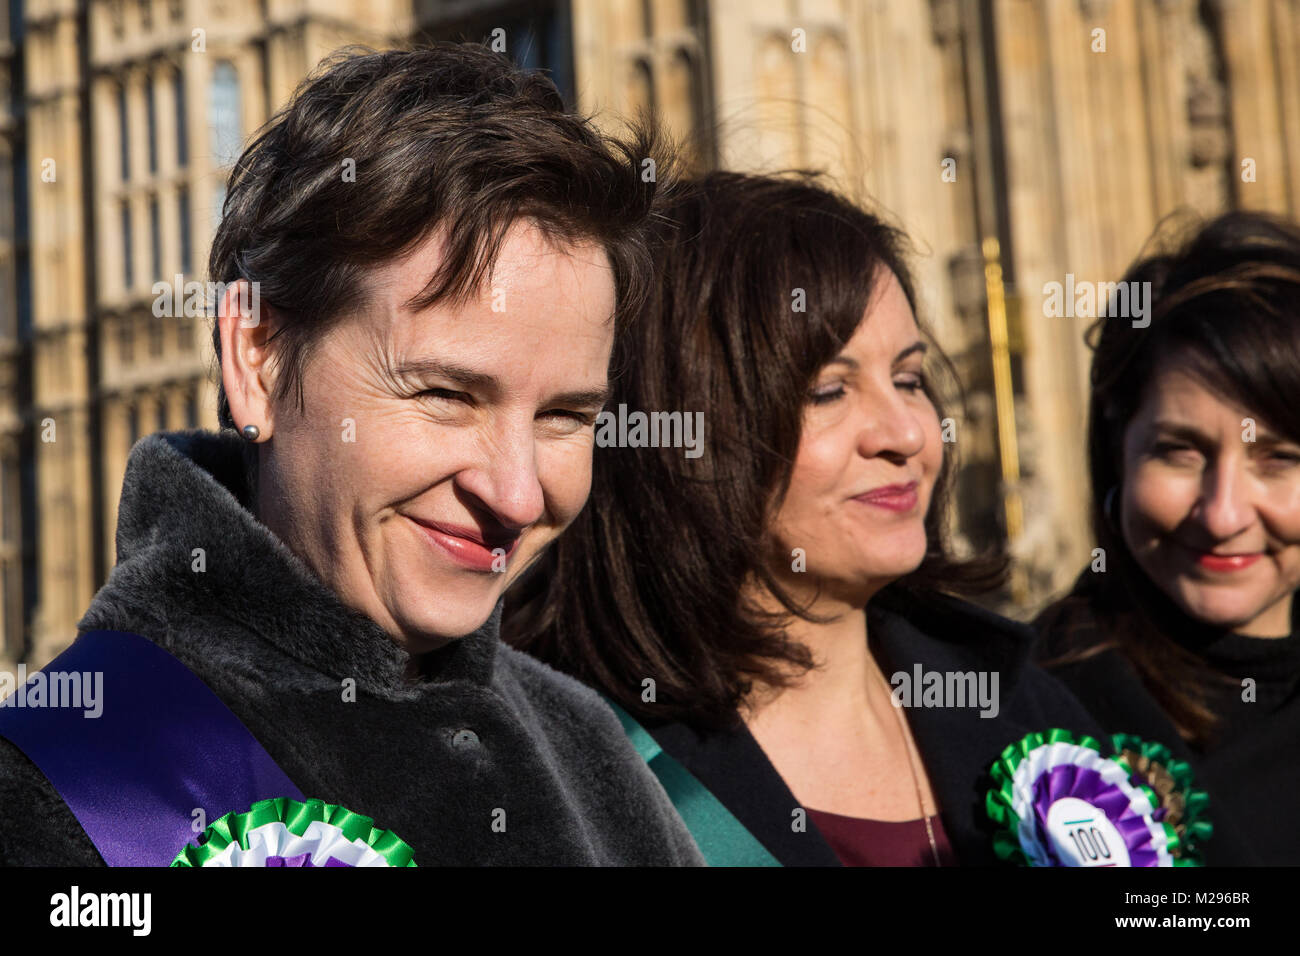 London, UK. 6th Feb, 2018. Mary Creagh, MP for Wakefield, Caroline Flint, MP for Don Valley, and Liz Kendall, MP - Stock Image